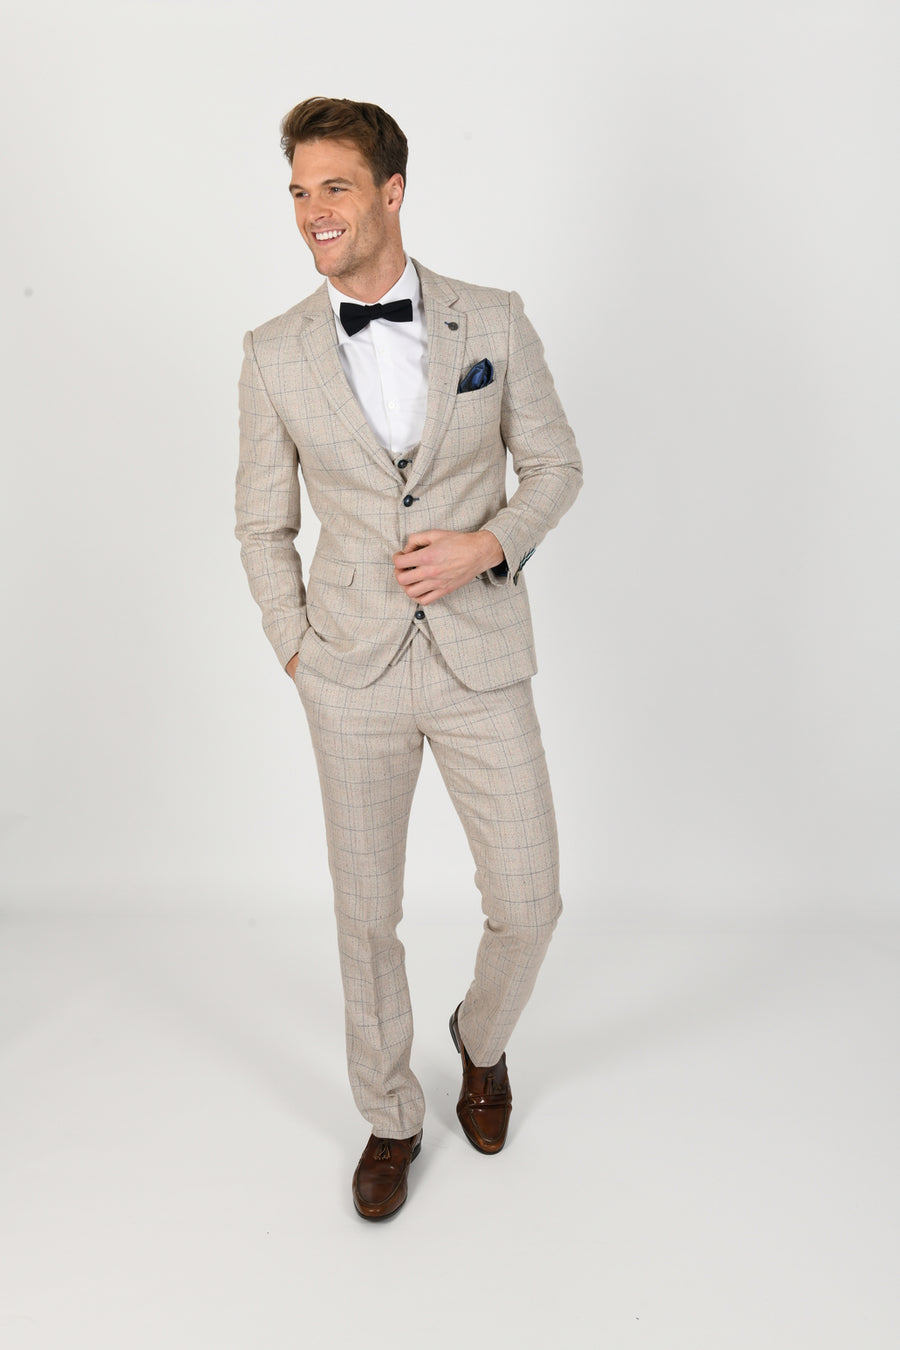 Harding Wedding Suit w/ Single Breasted Waistcoat - Wedding Suit Direct